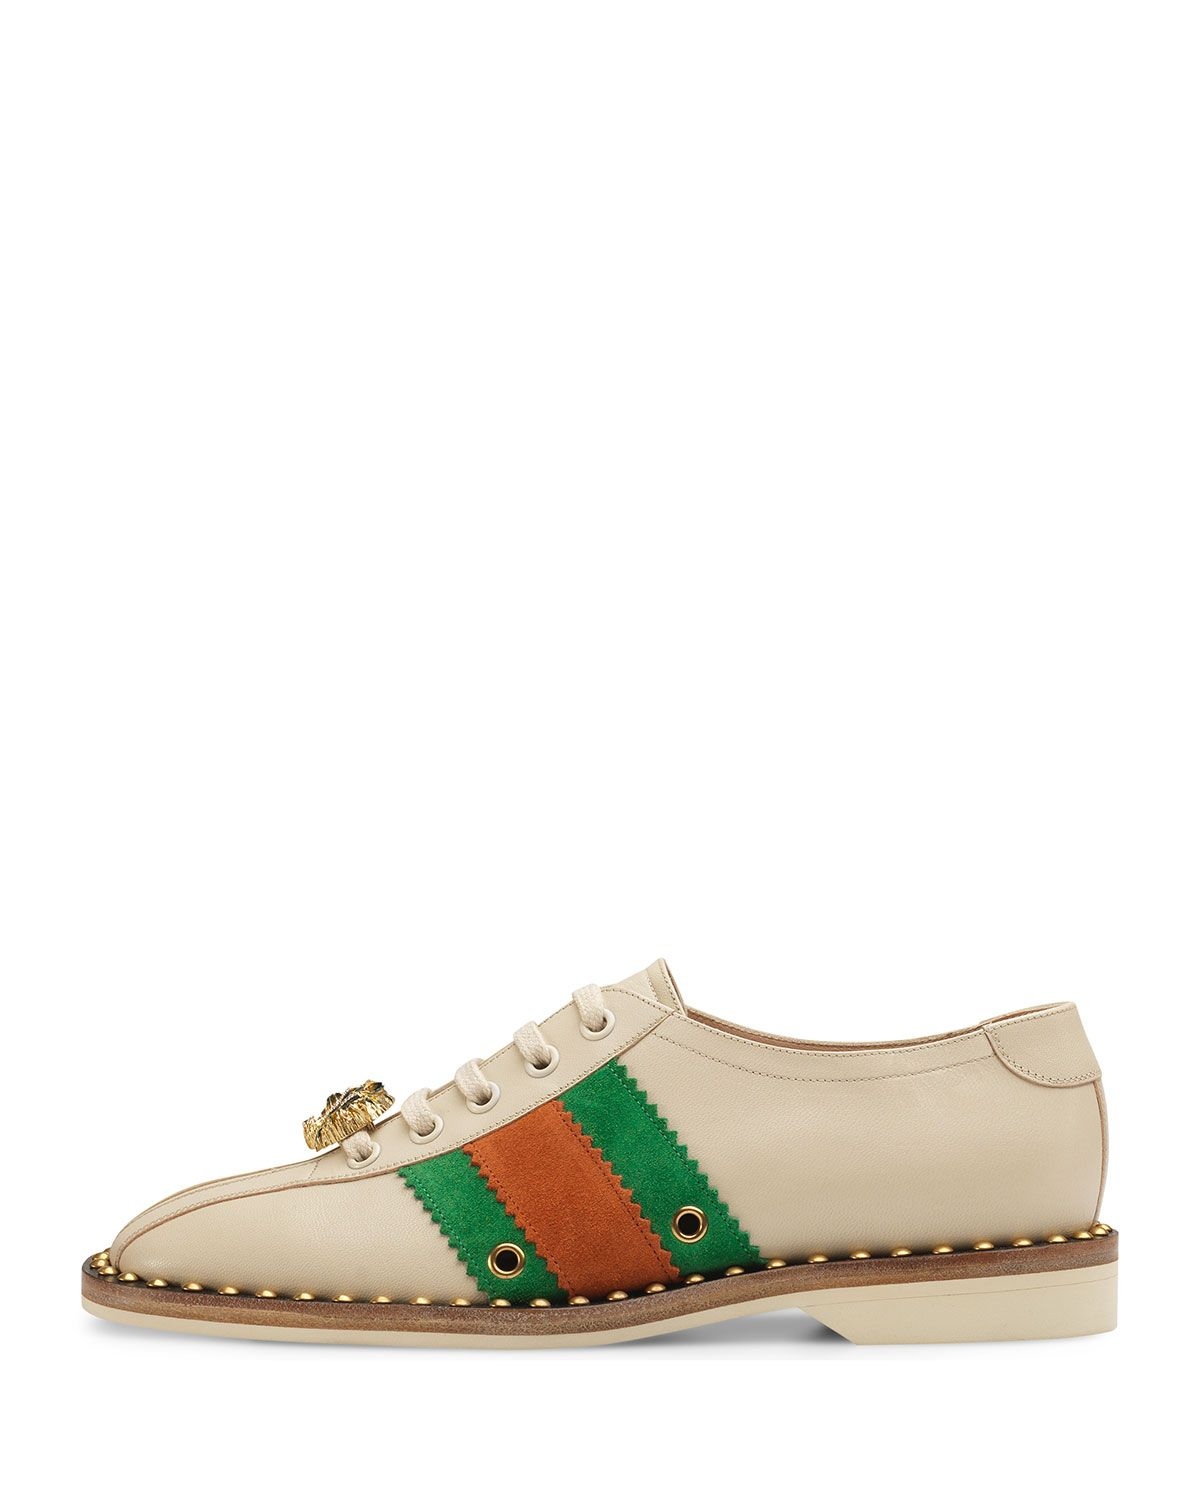 86f422da0 Gucci Leather Lace-Up Bowling Shoe Sneakers in 2019